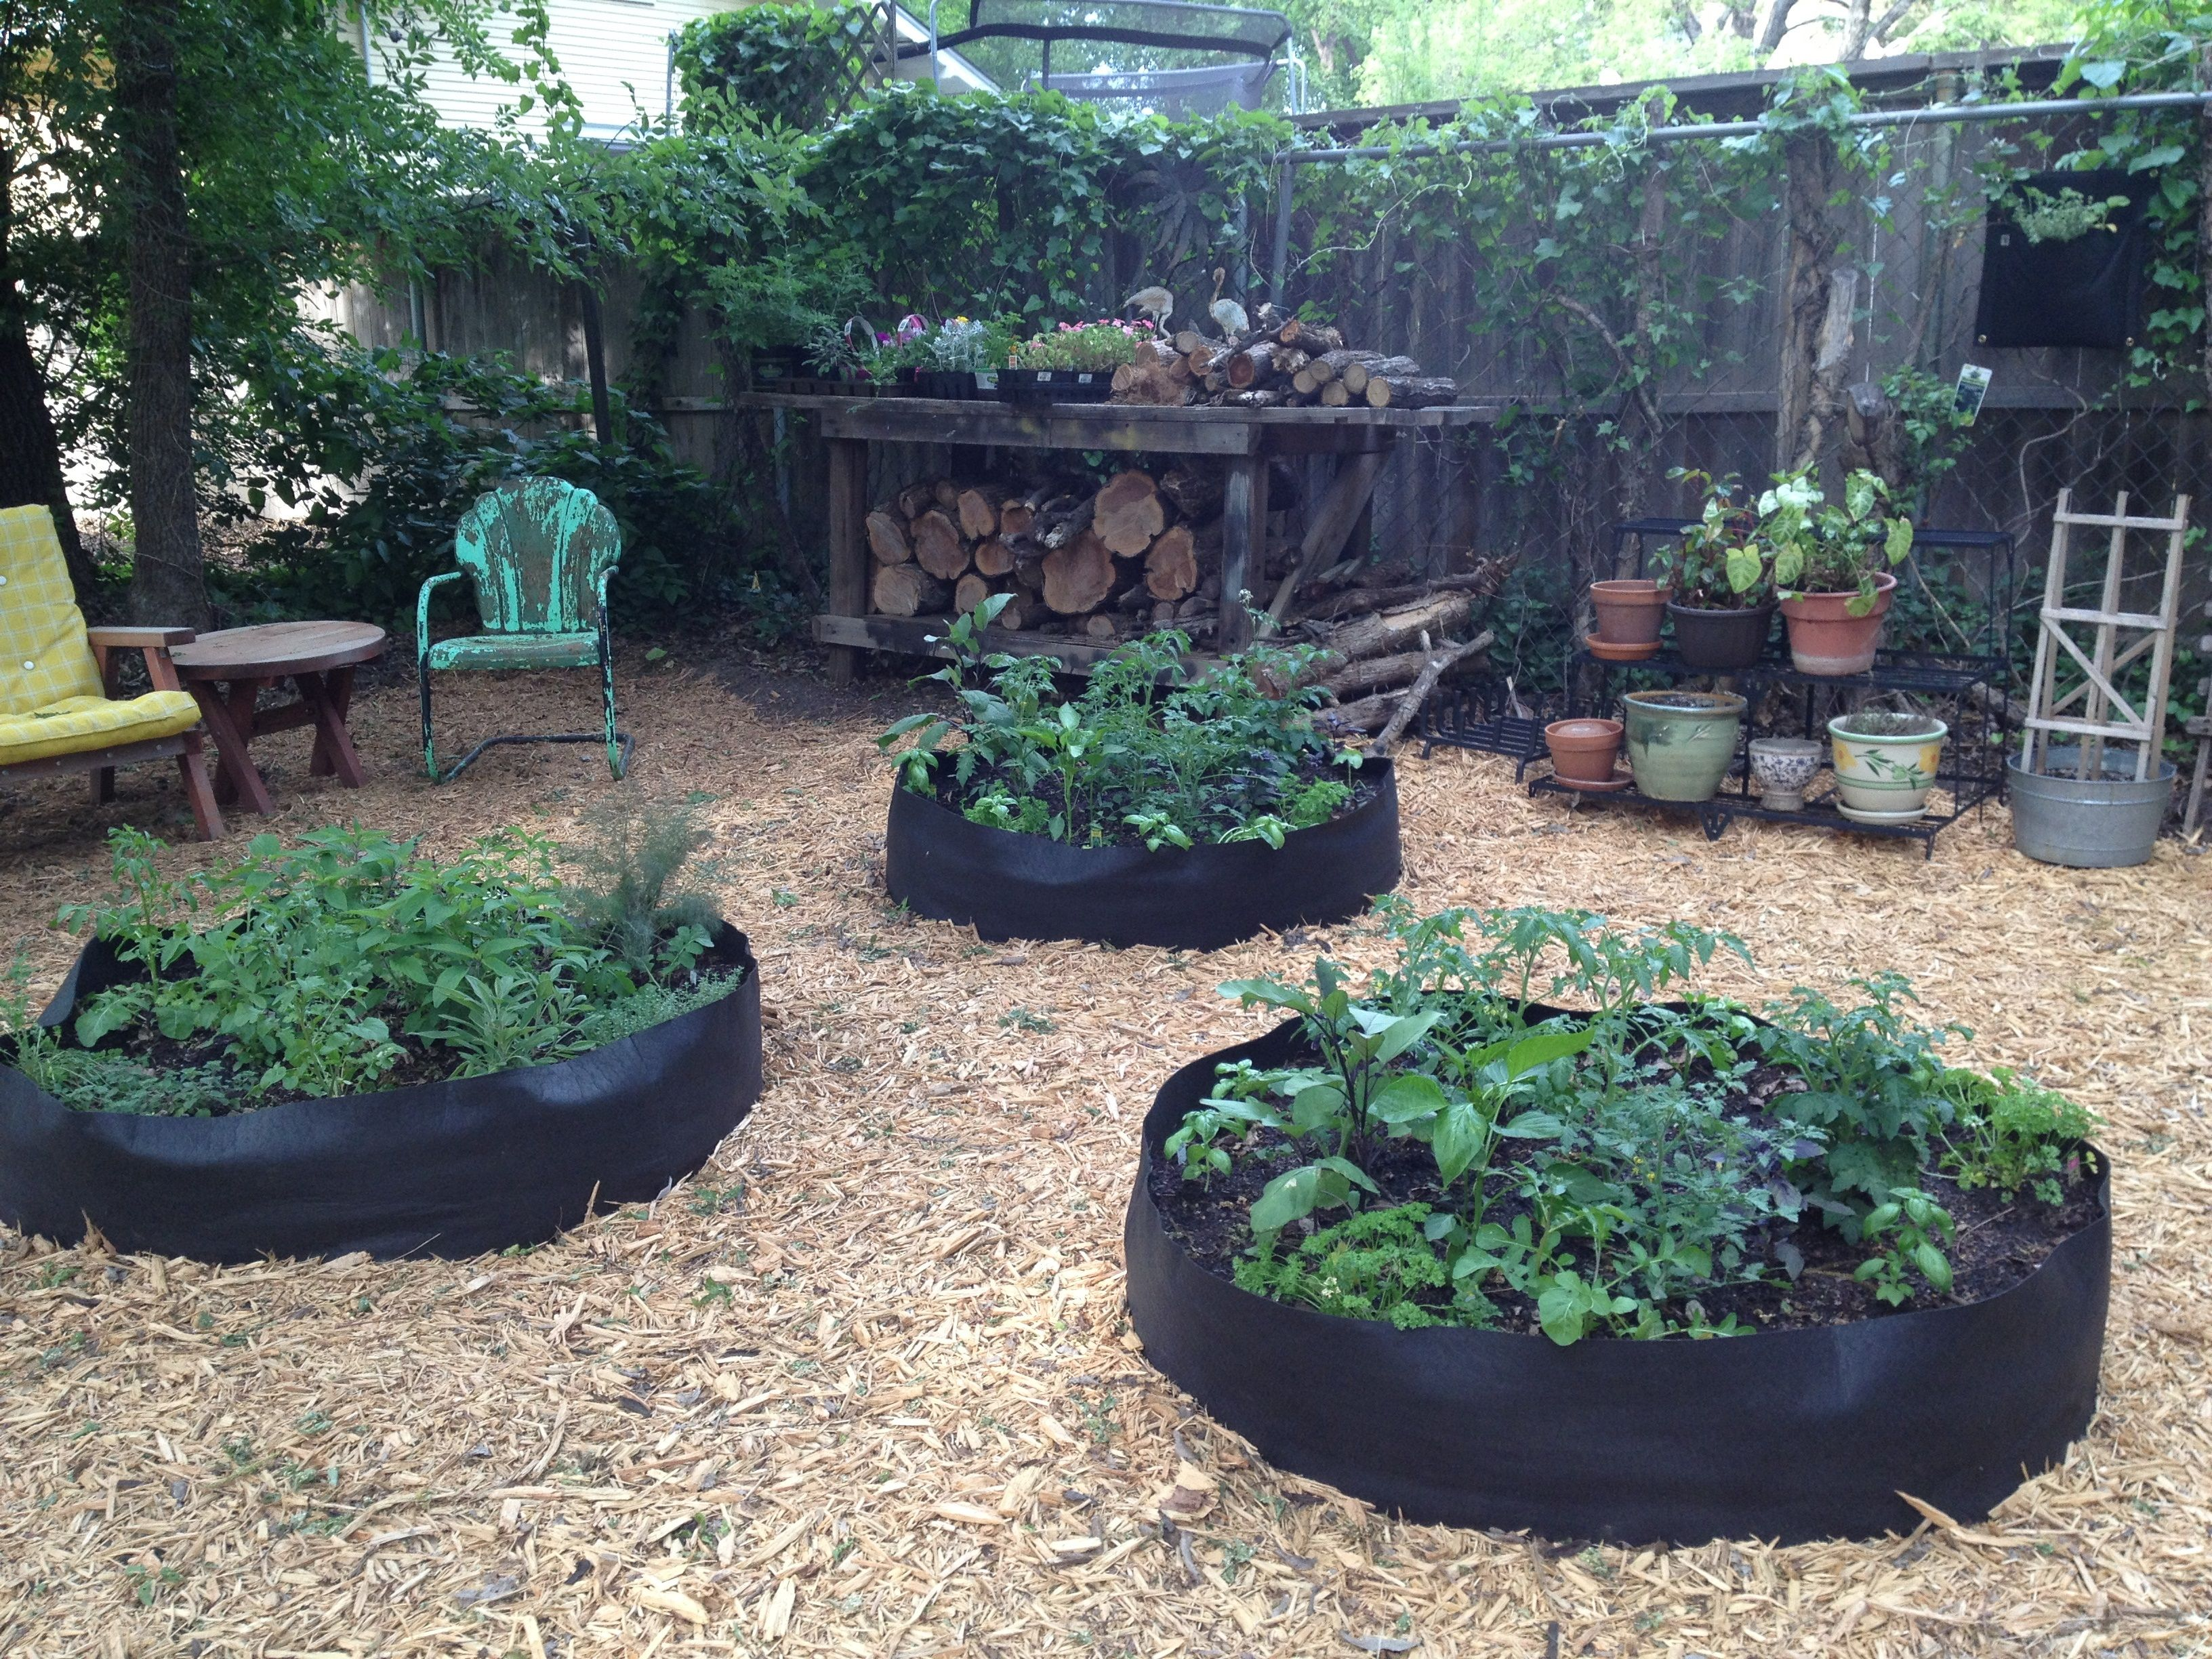 Big Bag Bed garden ideas | Neat products and ideas | Garden, Dig ...